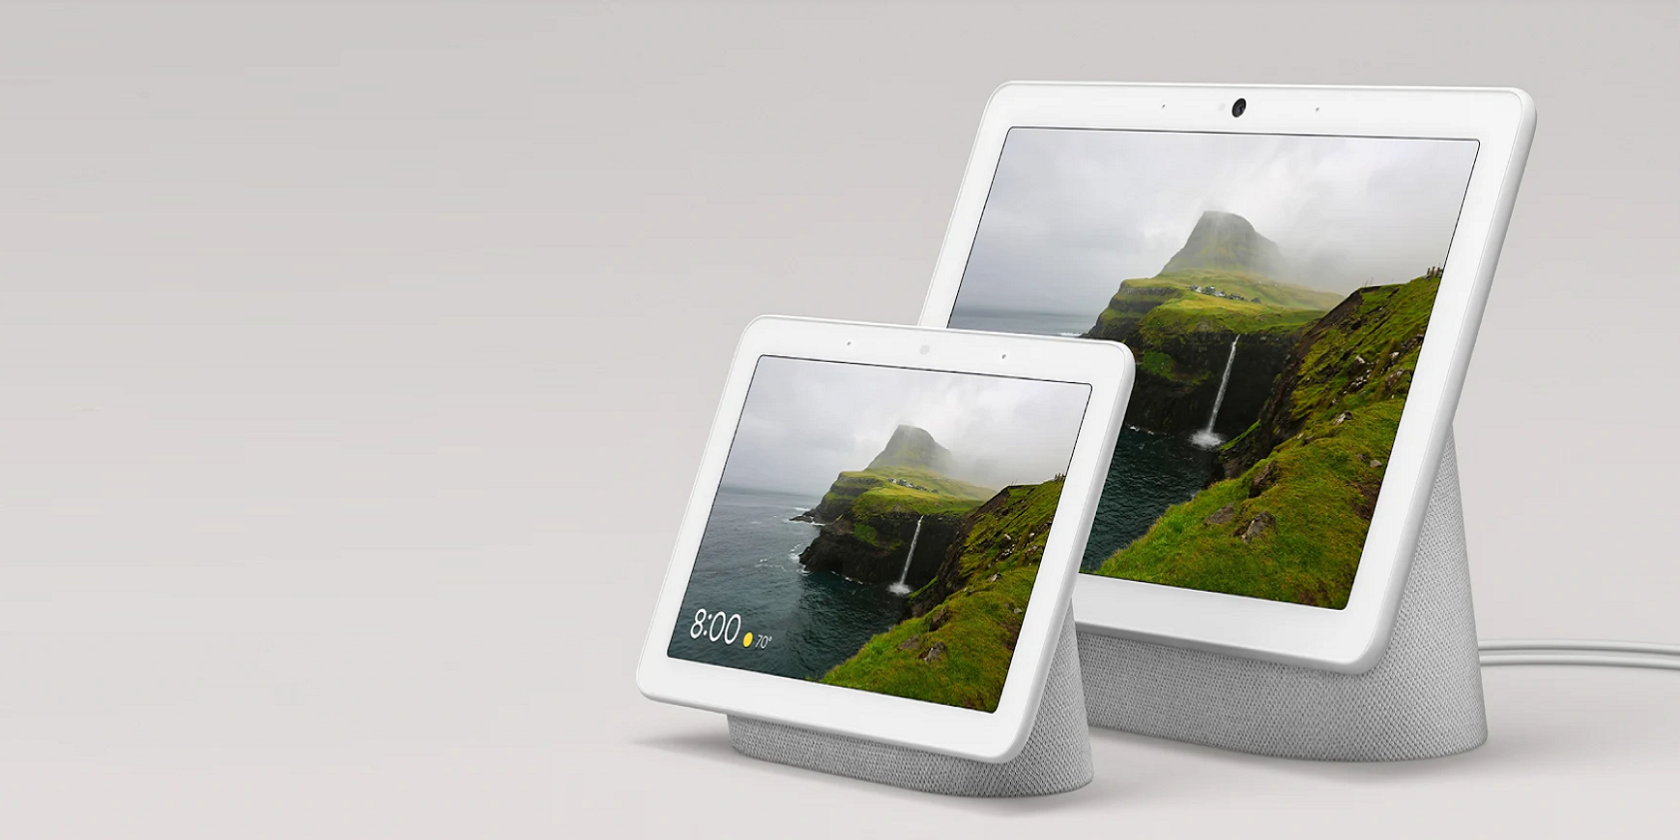 Google Nest Hub vs. Nest Hub Max: What Are the Differences?